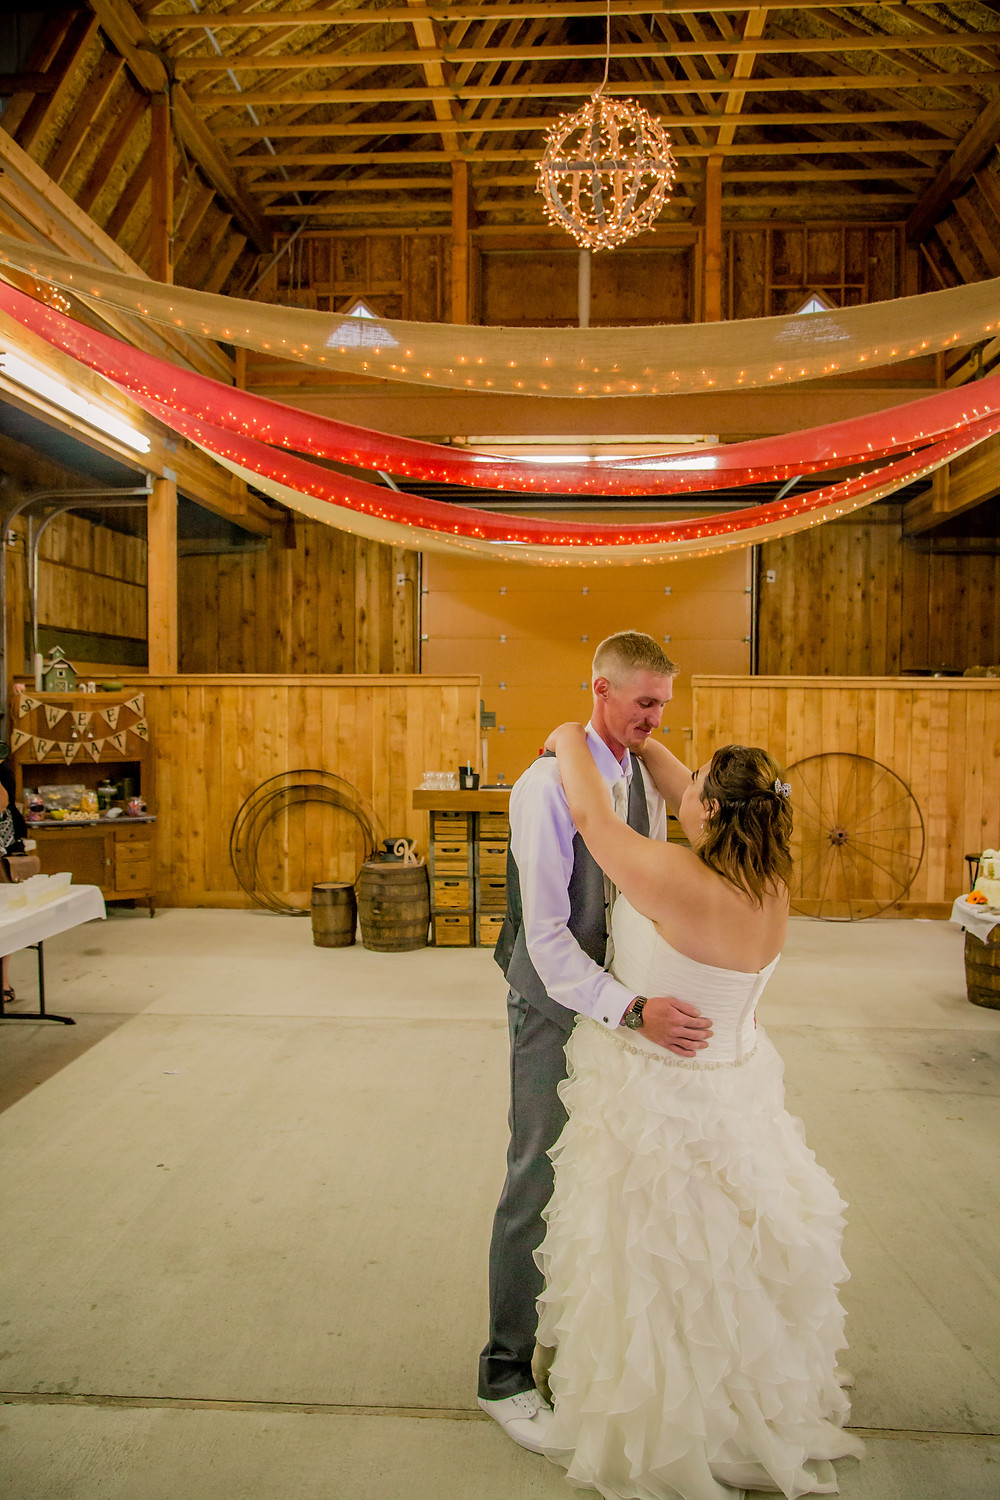 A groom dances with his bride during their wedding at the Red Barn at Stocker Farms in Snohomish, a wedding venue near Seattle, WA.